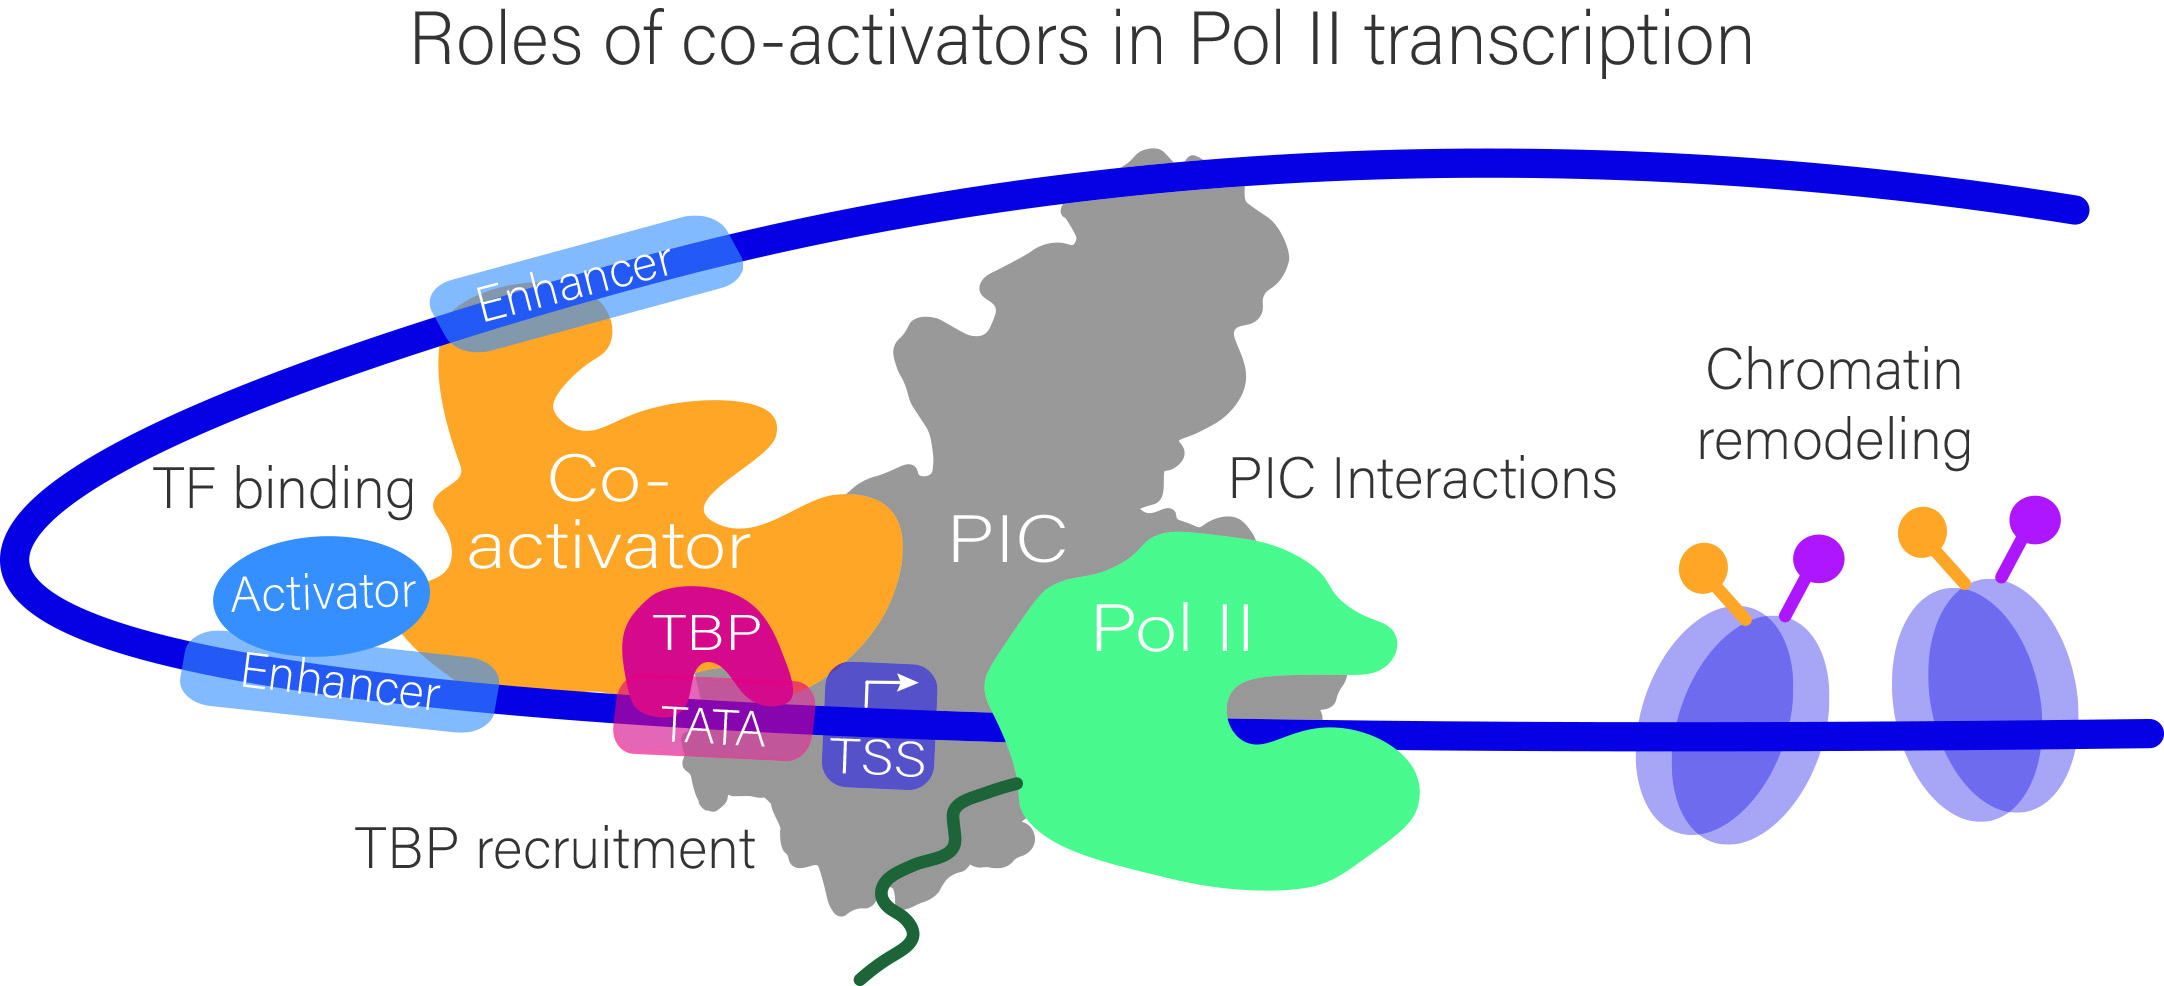 Elucidating mechanisms and dynamics of gene activation by the interplay between RNA Polymerase II, GTFs and co-activators